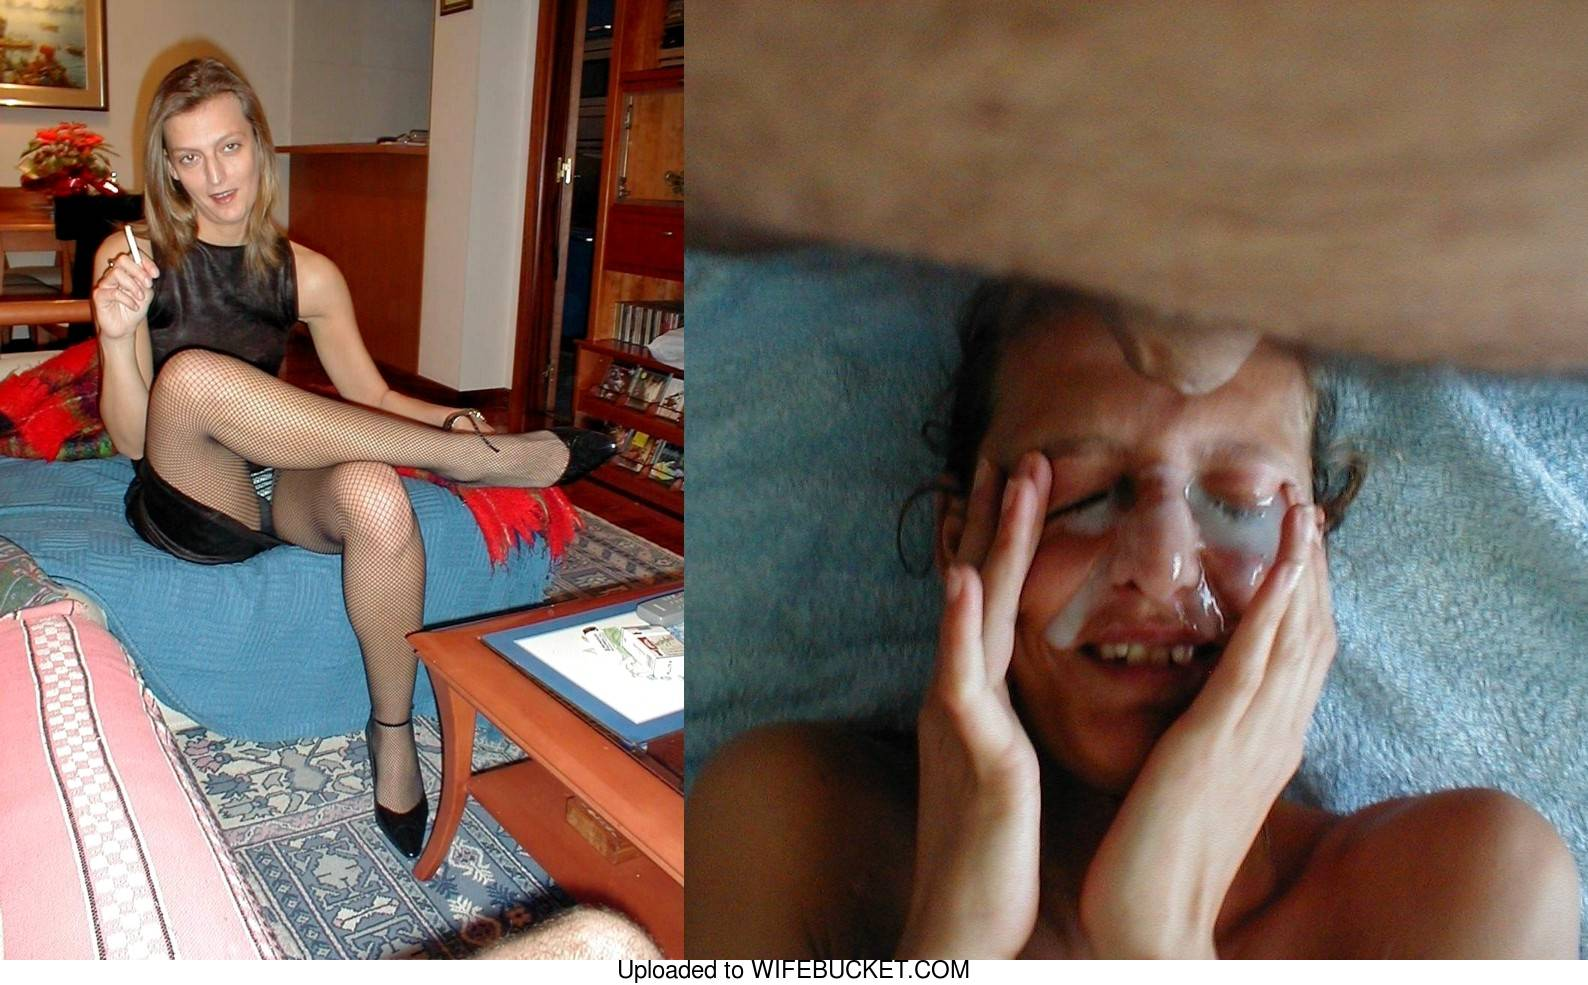 before-after facial cumshot photo from a real mature wife